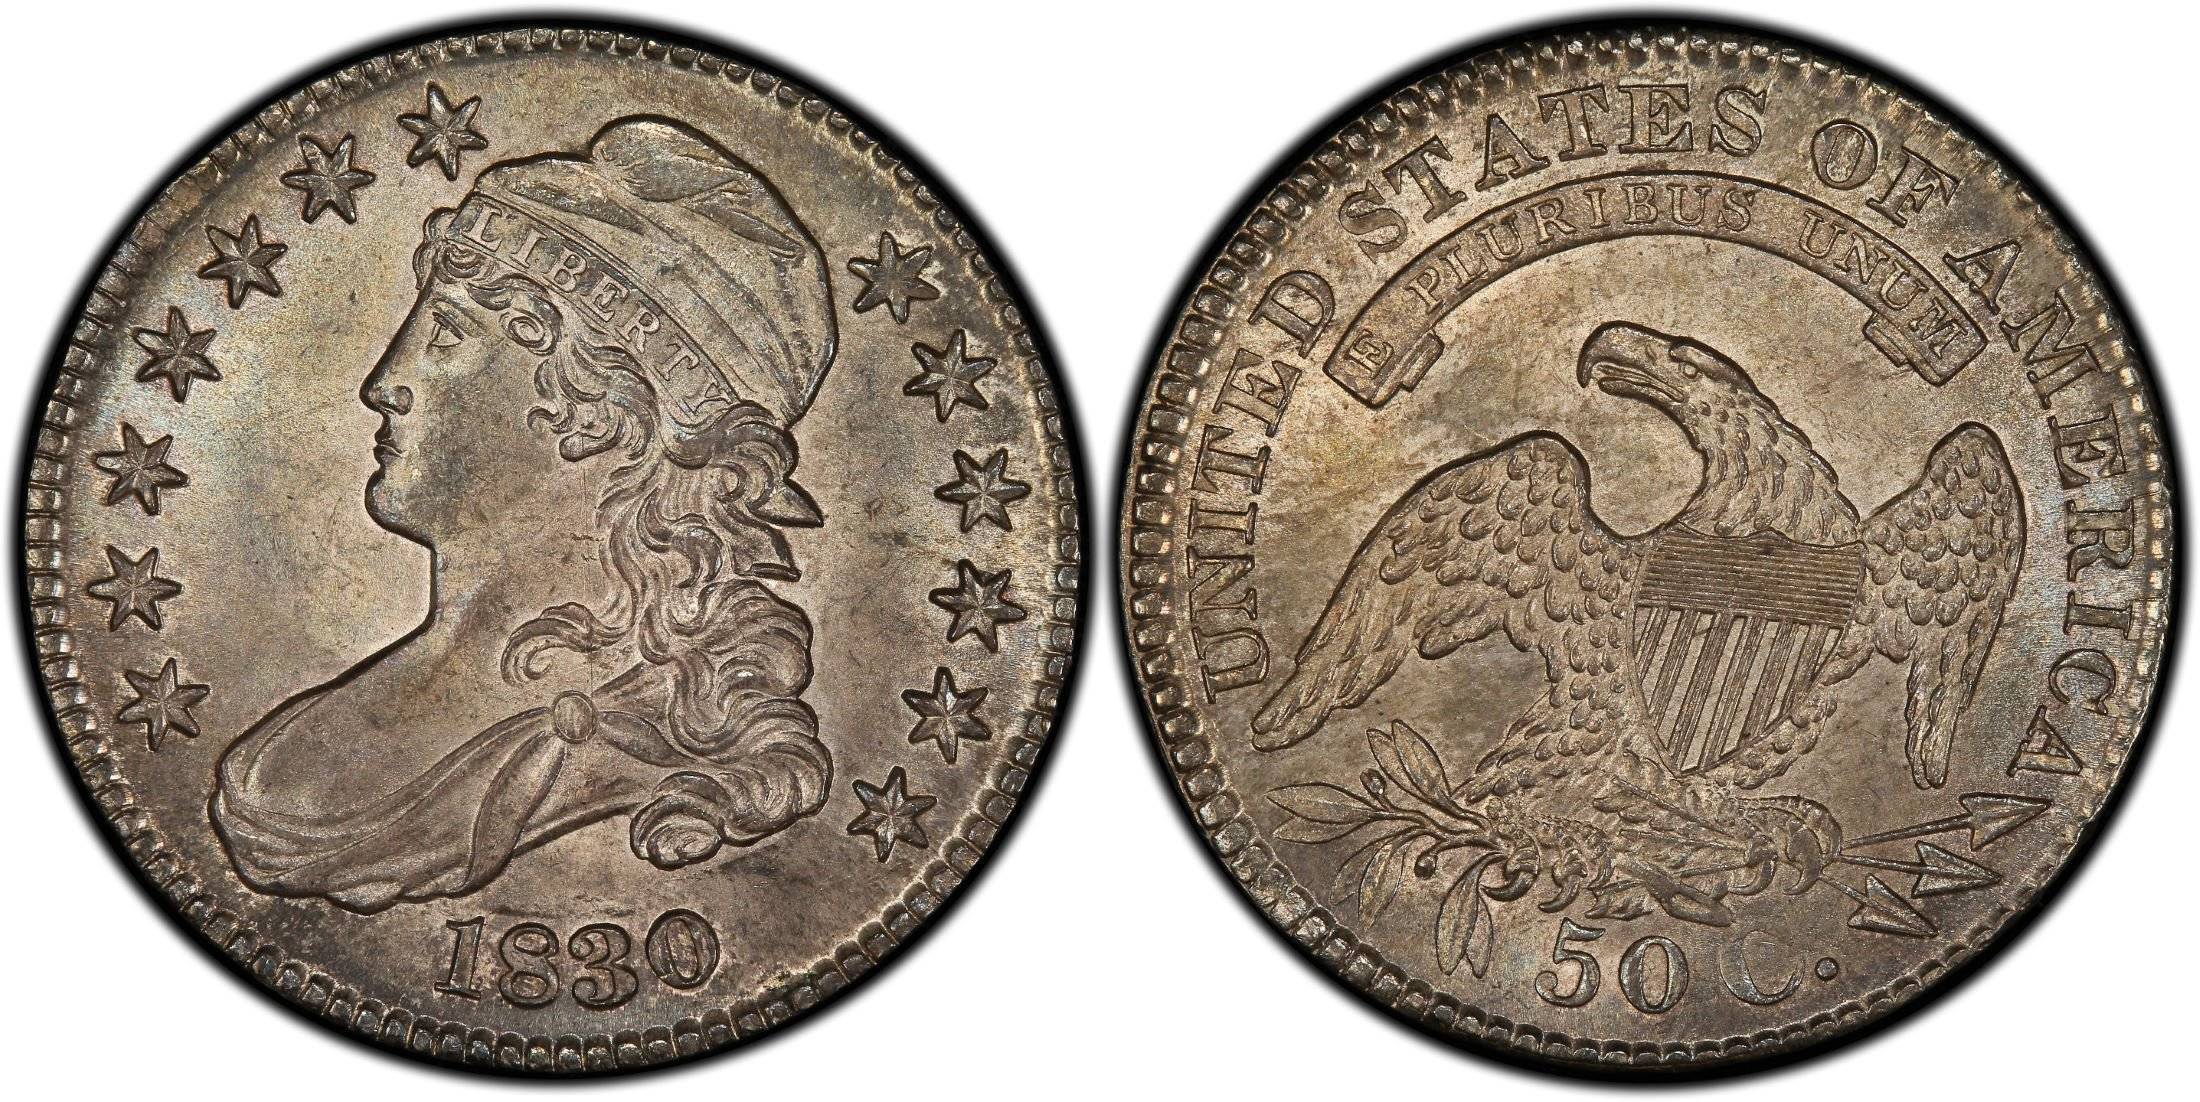 Us Half Dollar Or Fifty Cent Coin From 1830 Usa Fifty